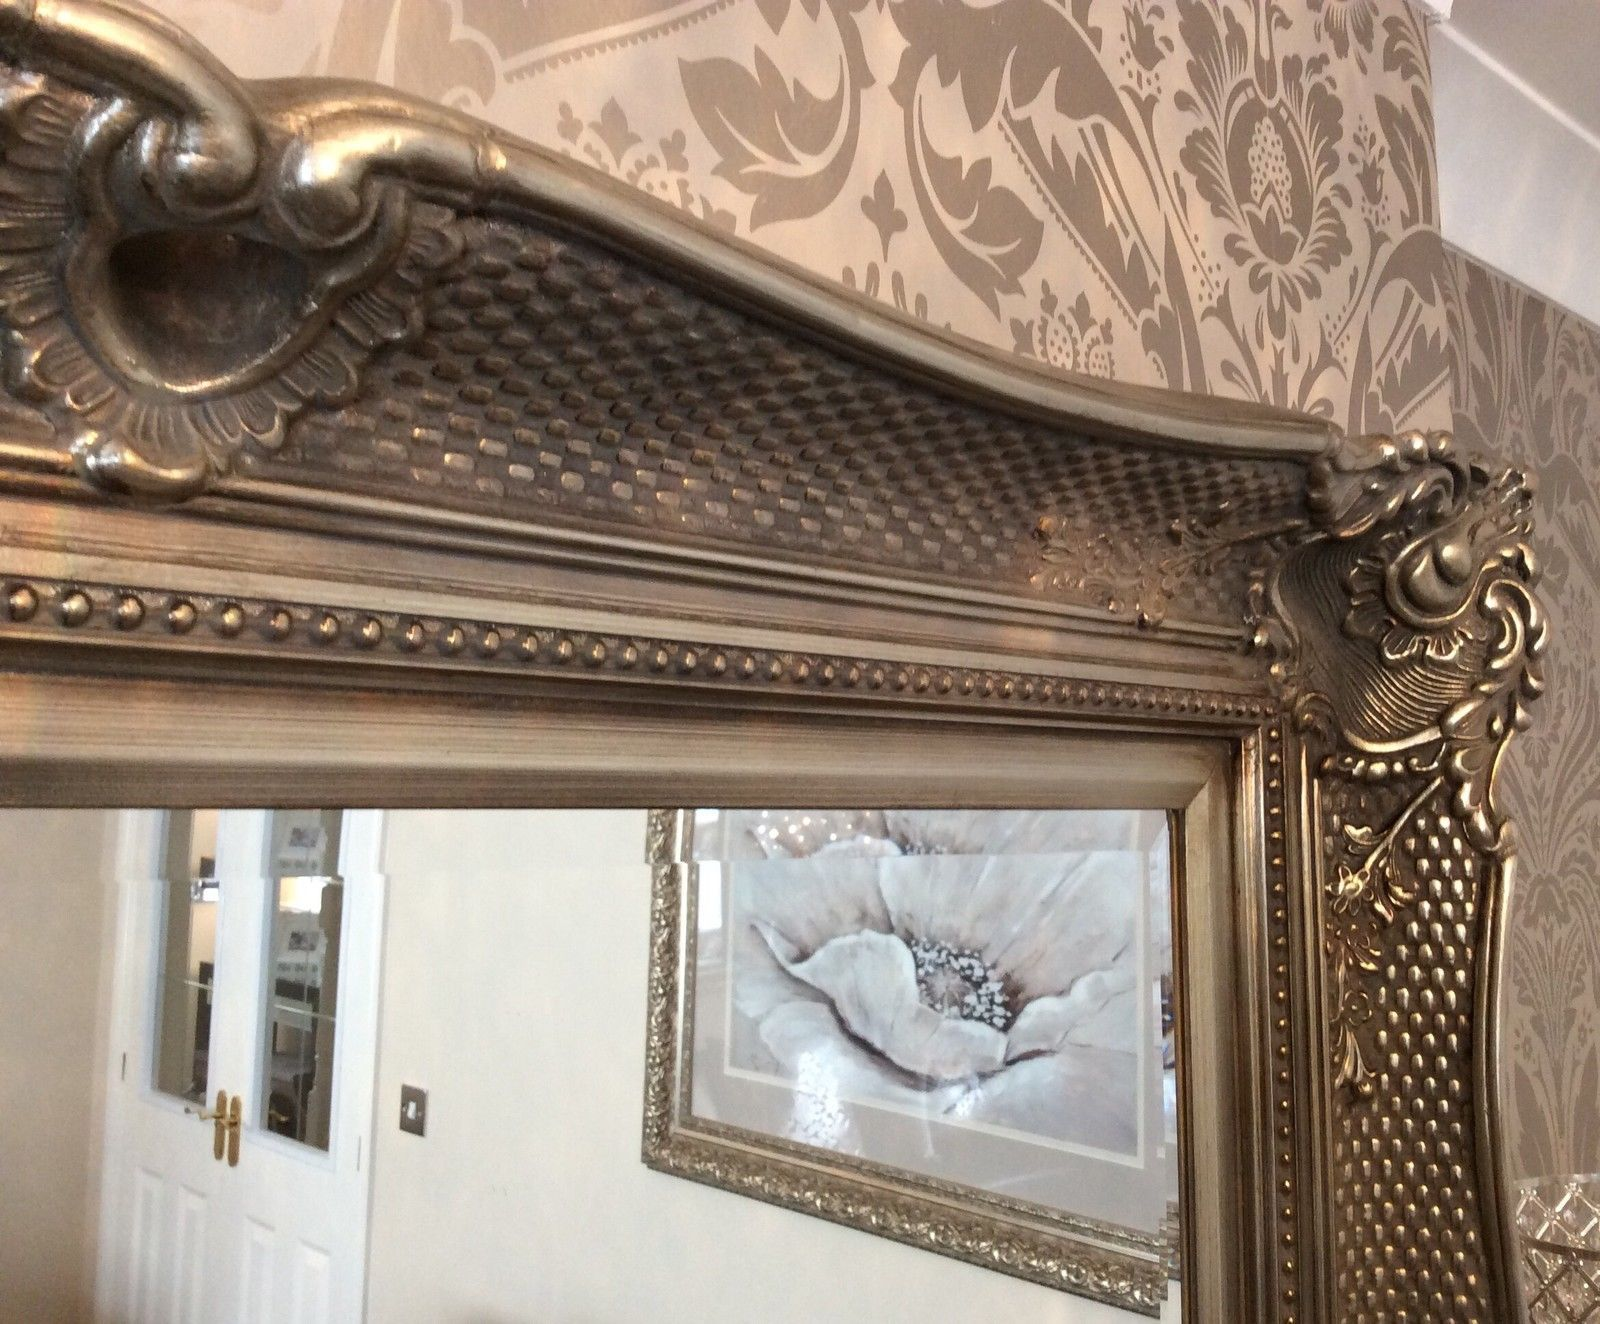 Large silver decorative mirror save s insured in transit for Big silver mirror